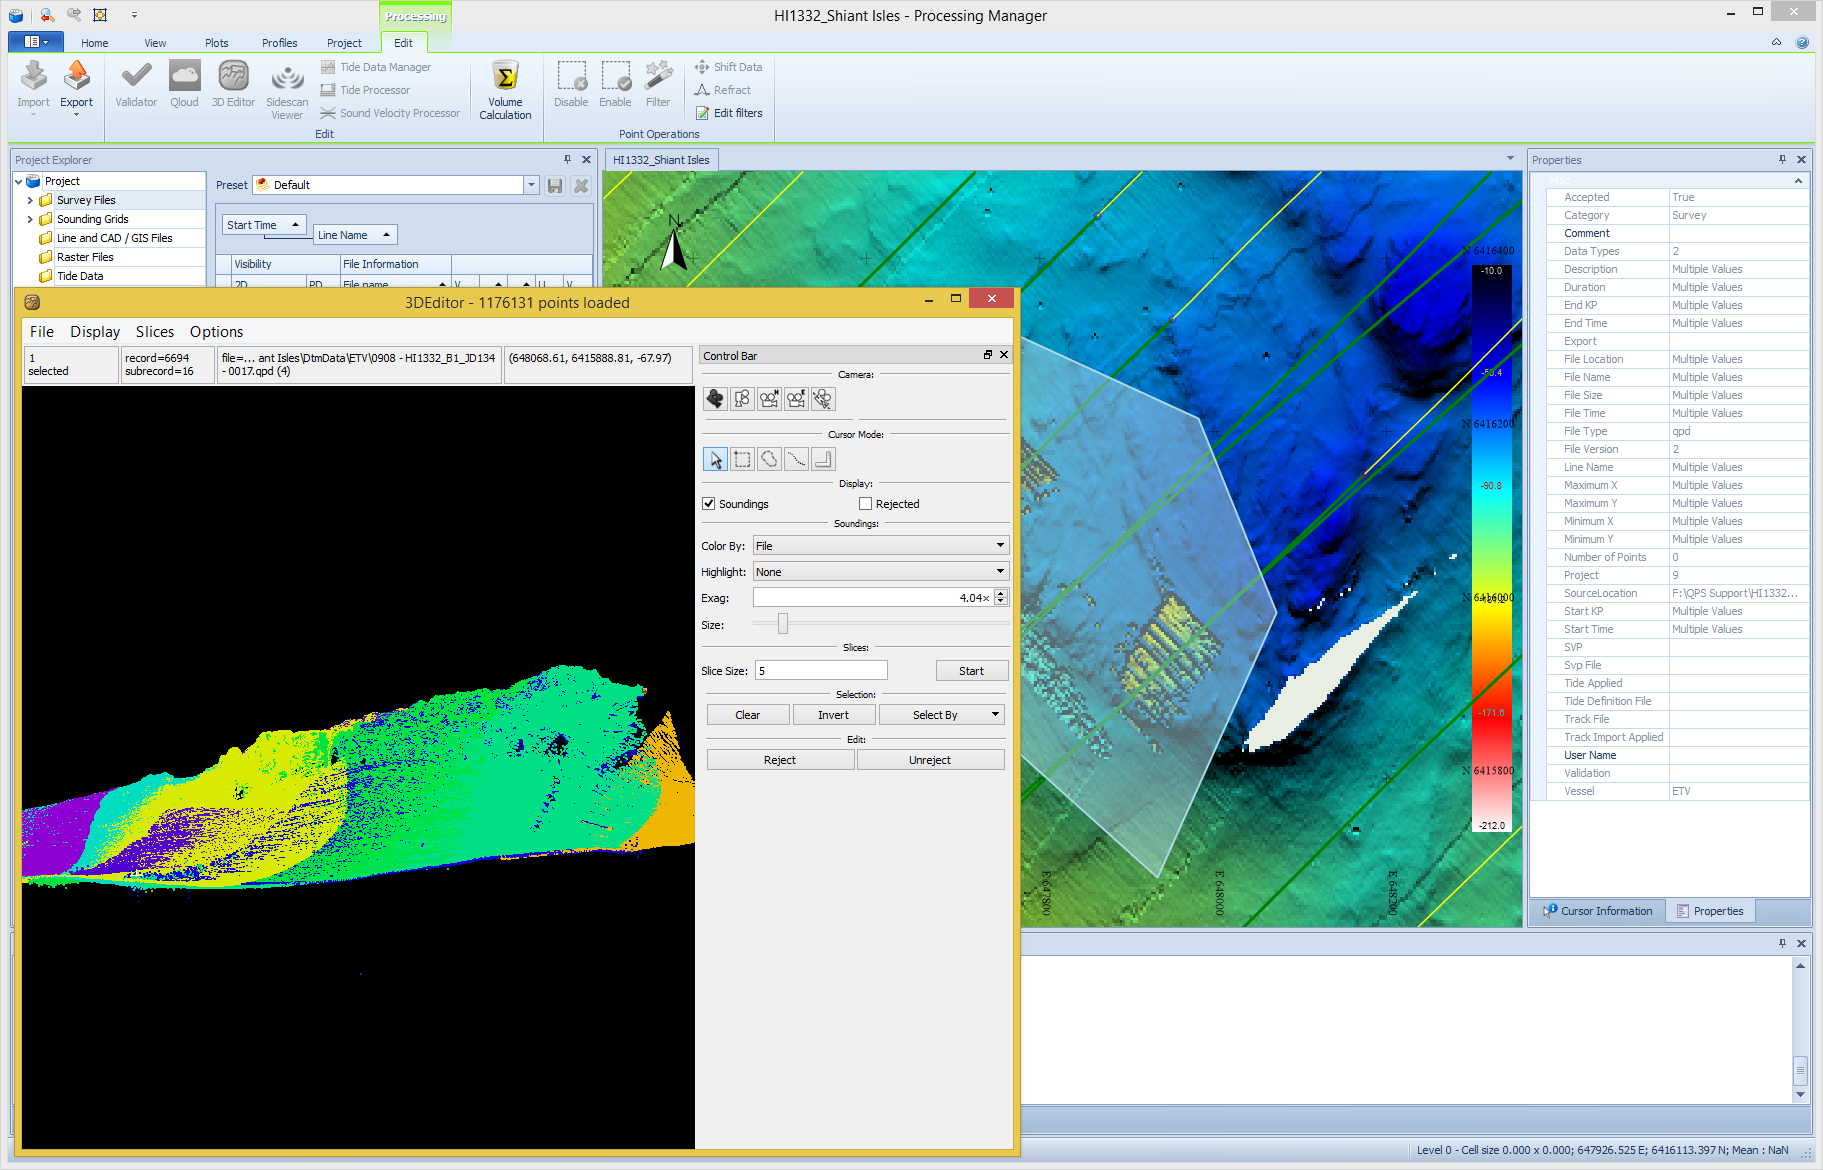 Qinsy Processing Manager Gets A Boost 4d Ocean News